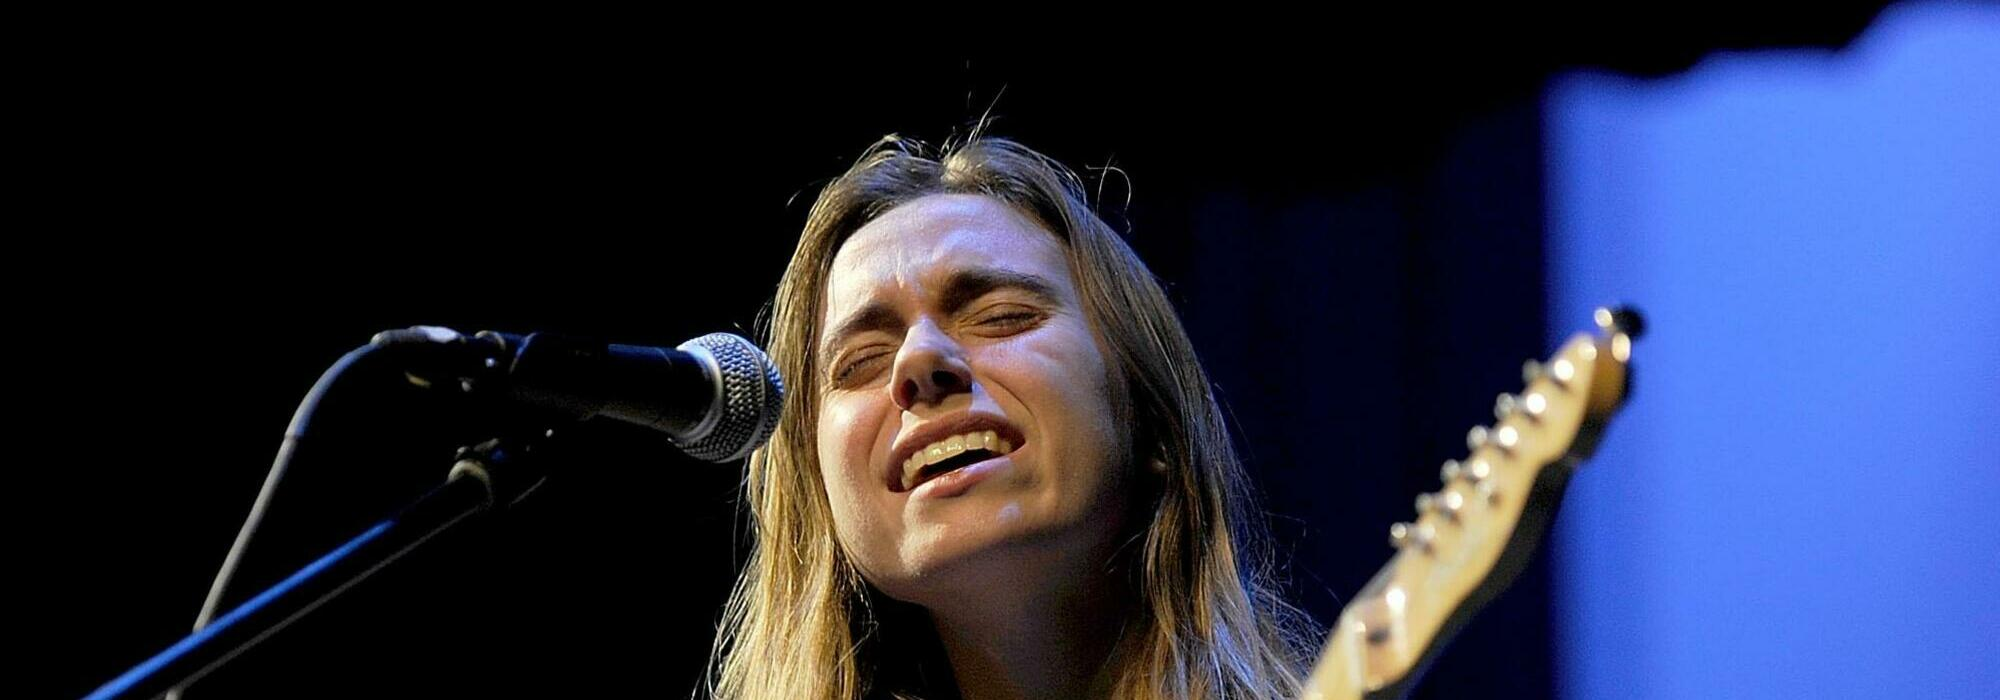 A Julien Baker live event